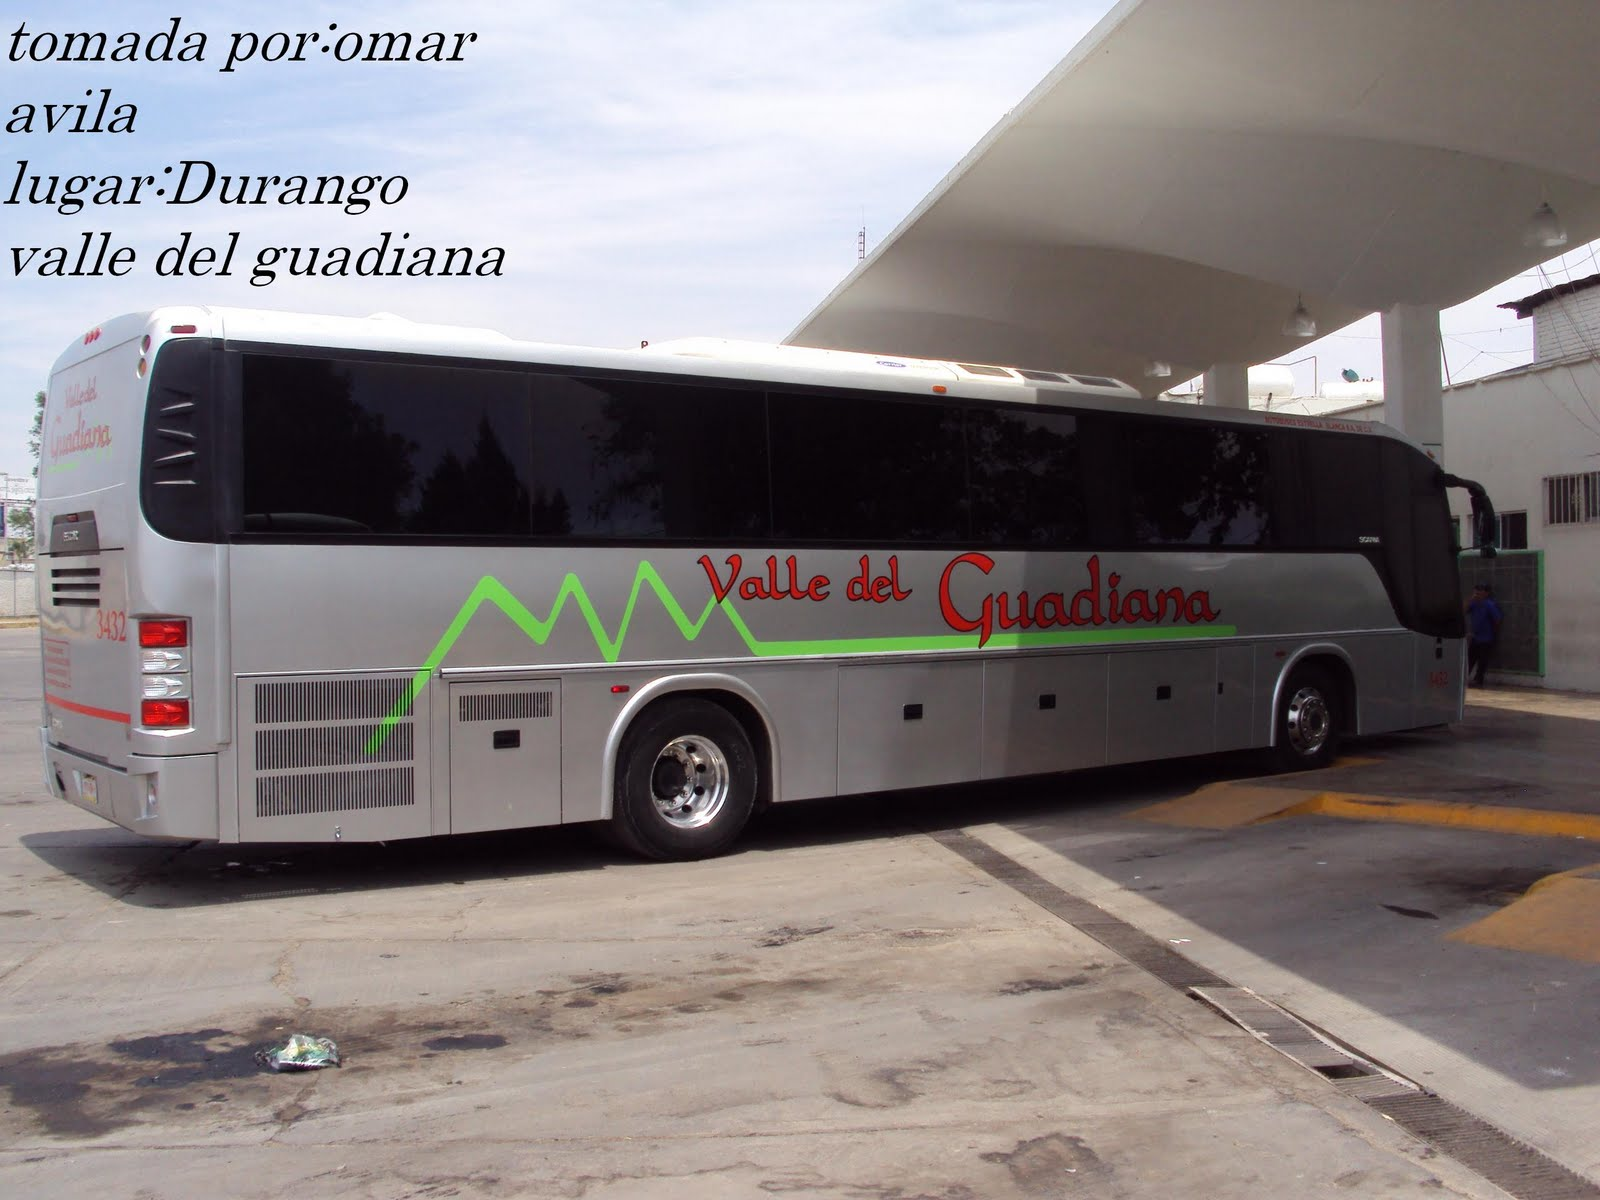 Durango bus valle del guadiana for Villas del guadiana 6 durango